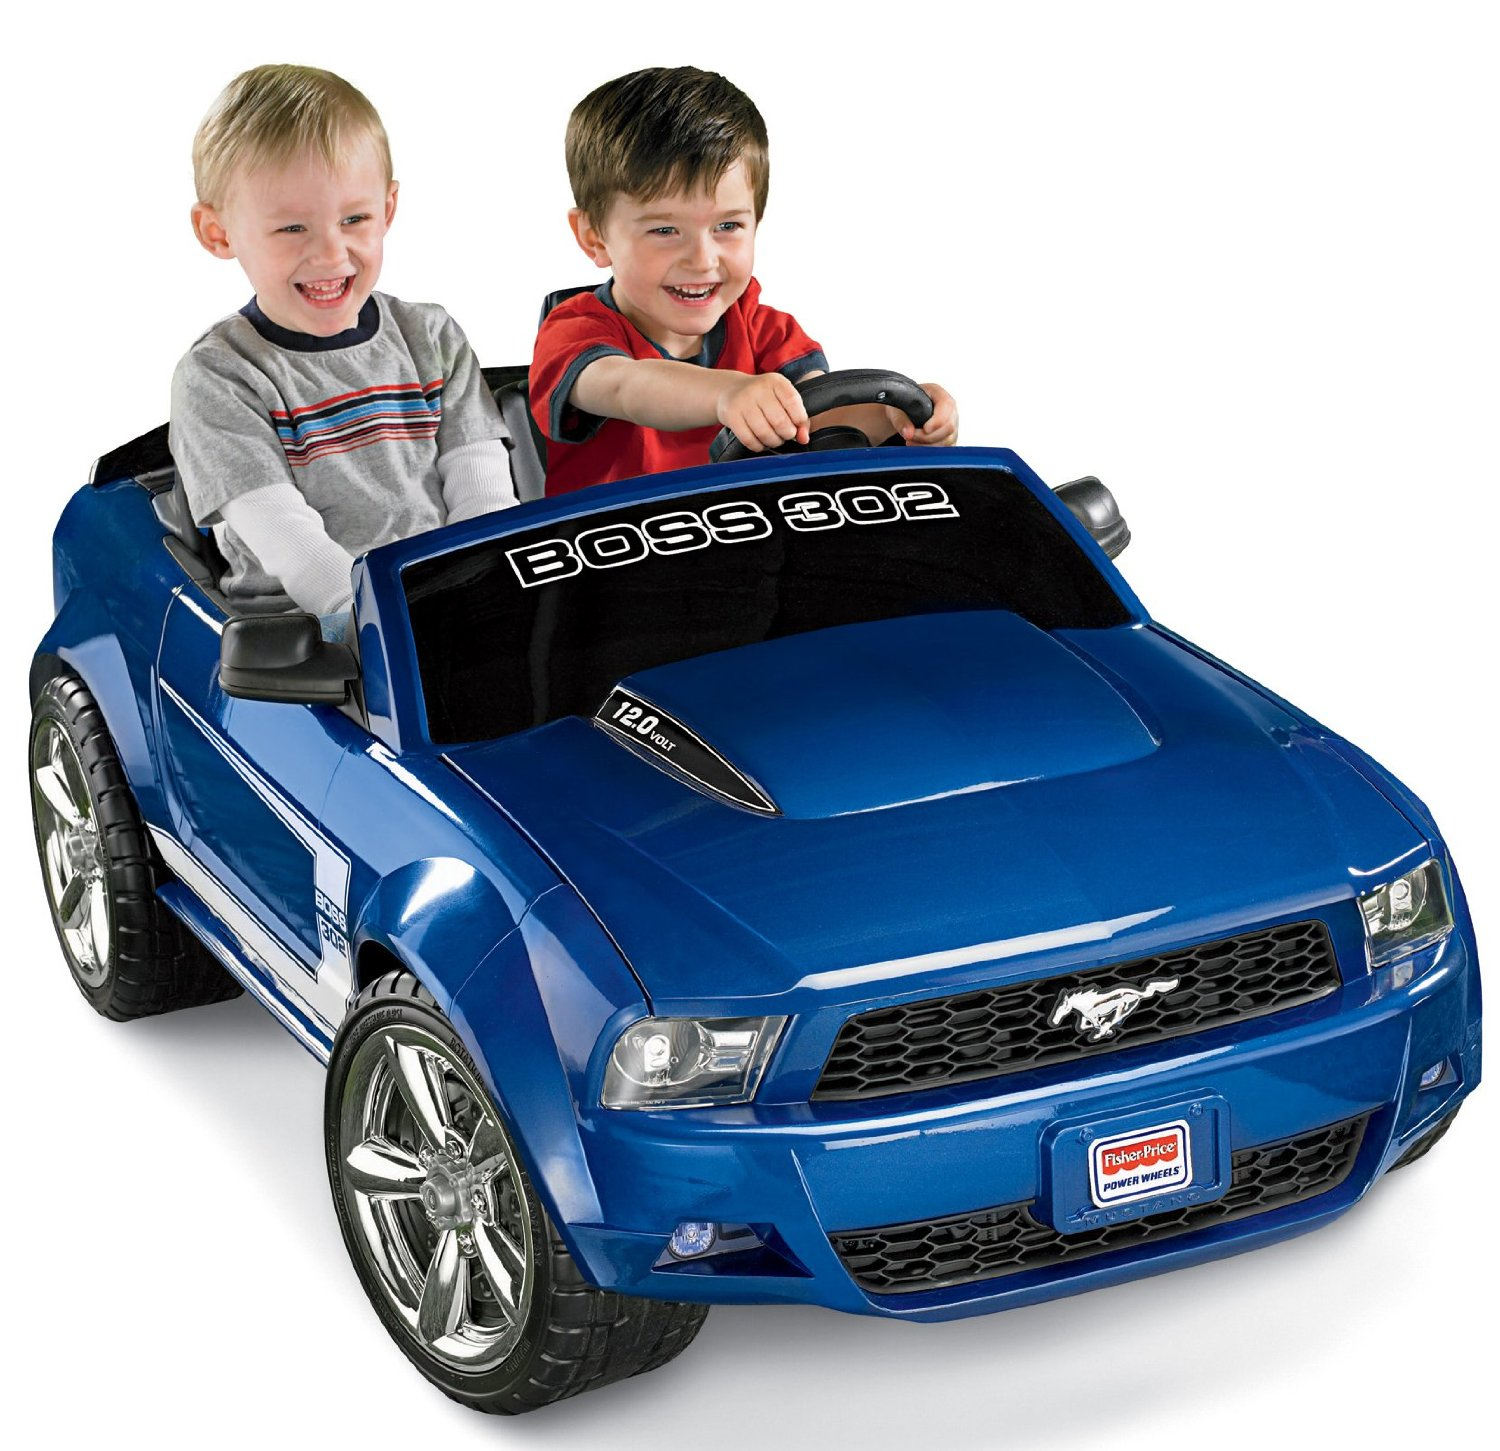 Fisher-Price Power Wheels Ford Mustang Car Ride-On Toy, Blue